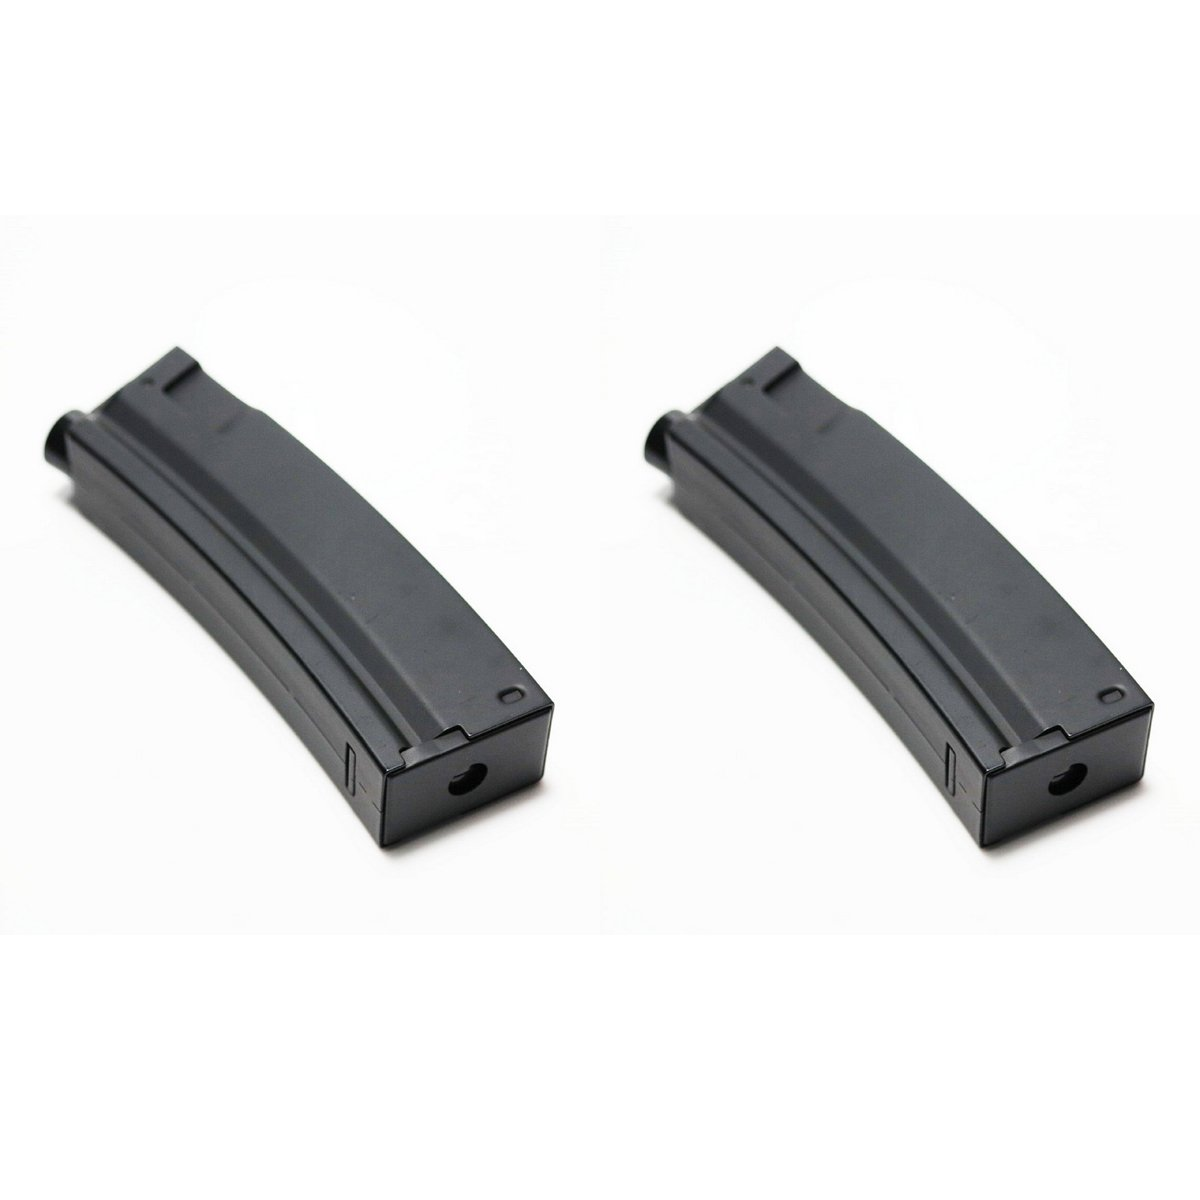 Airsoft Shooting Gear 2pcs Pack CYMA 65rd Mid-Cap Short Magazine for MP5 Series AEG Black